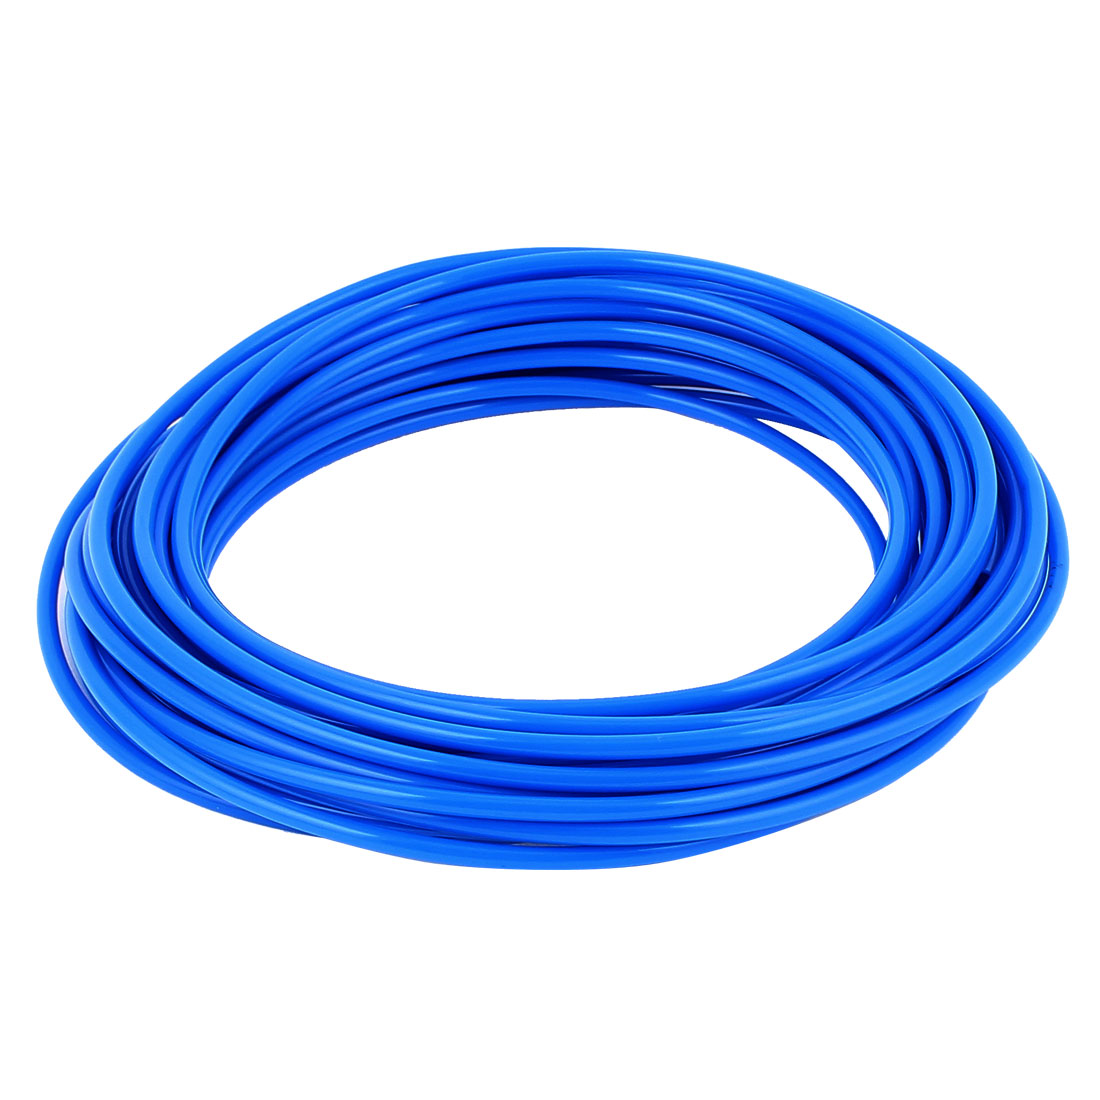 4mm x 2.5mm Fleaxible PU Tube Pneumatic Hose Blue 12M Length